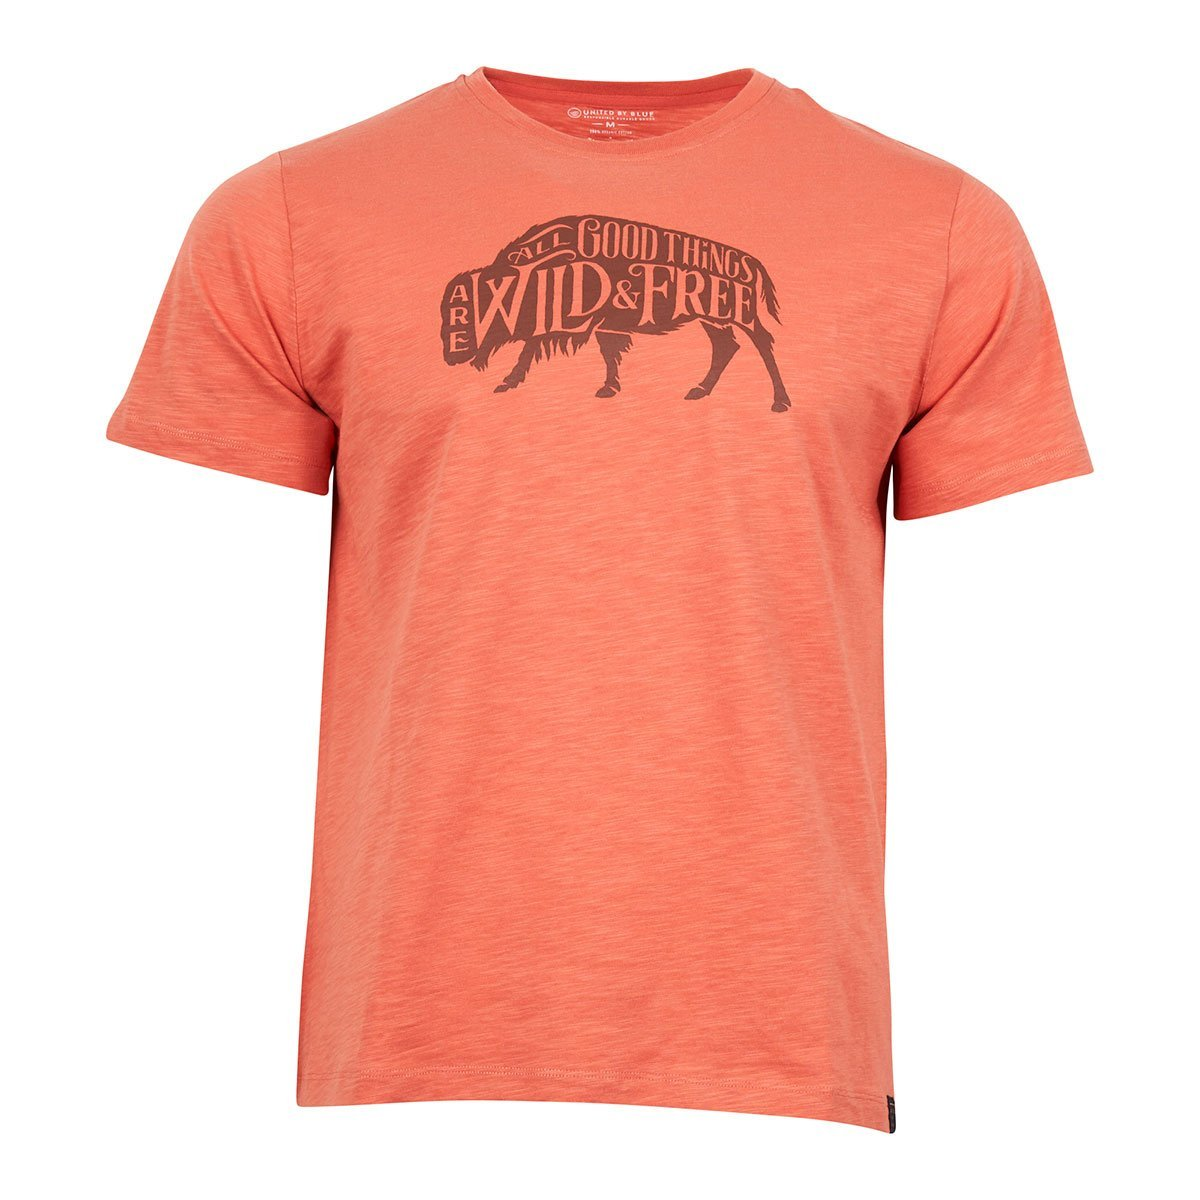 United By Blue | Men's Graphic T-Shirt | Organic Cotton | Wild & Free - Canyon Orange